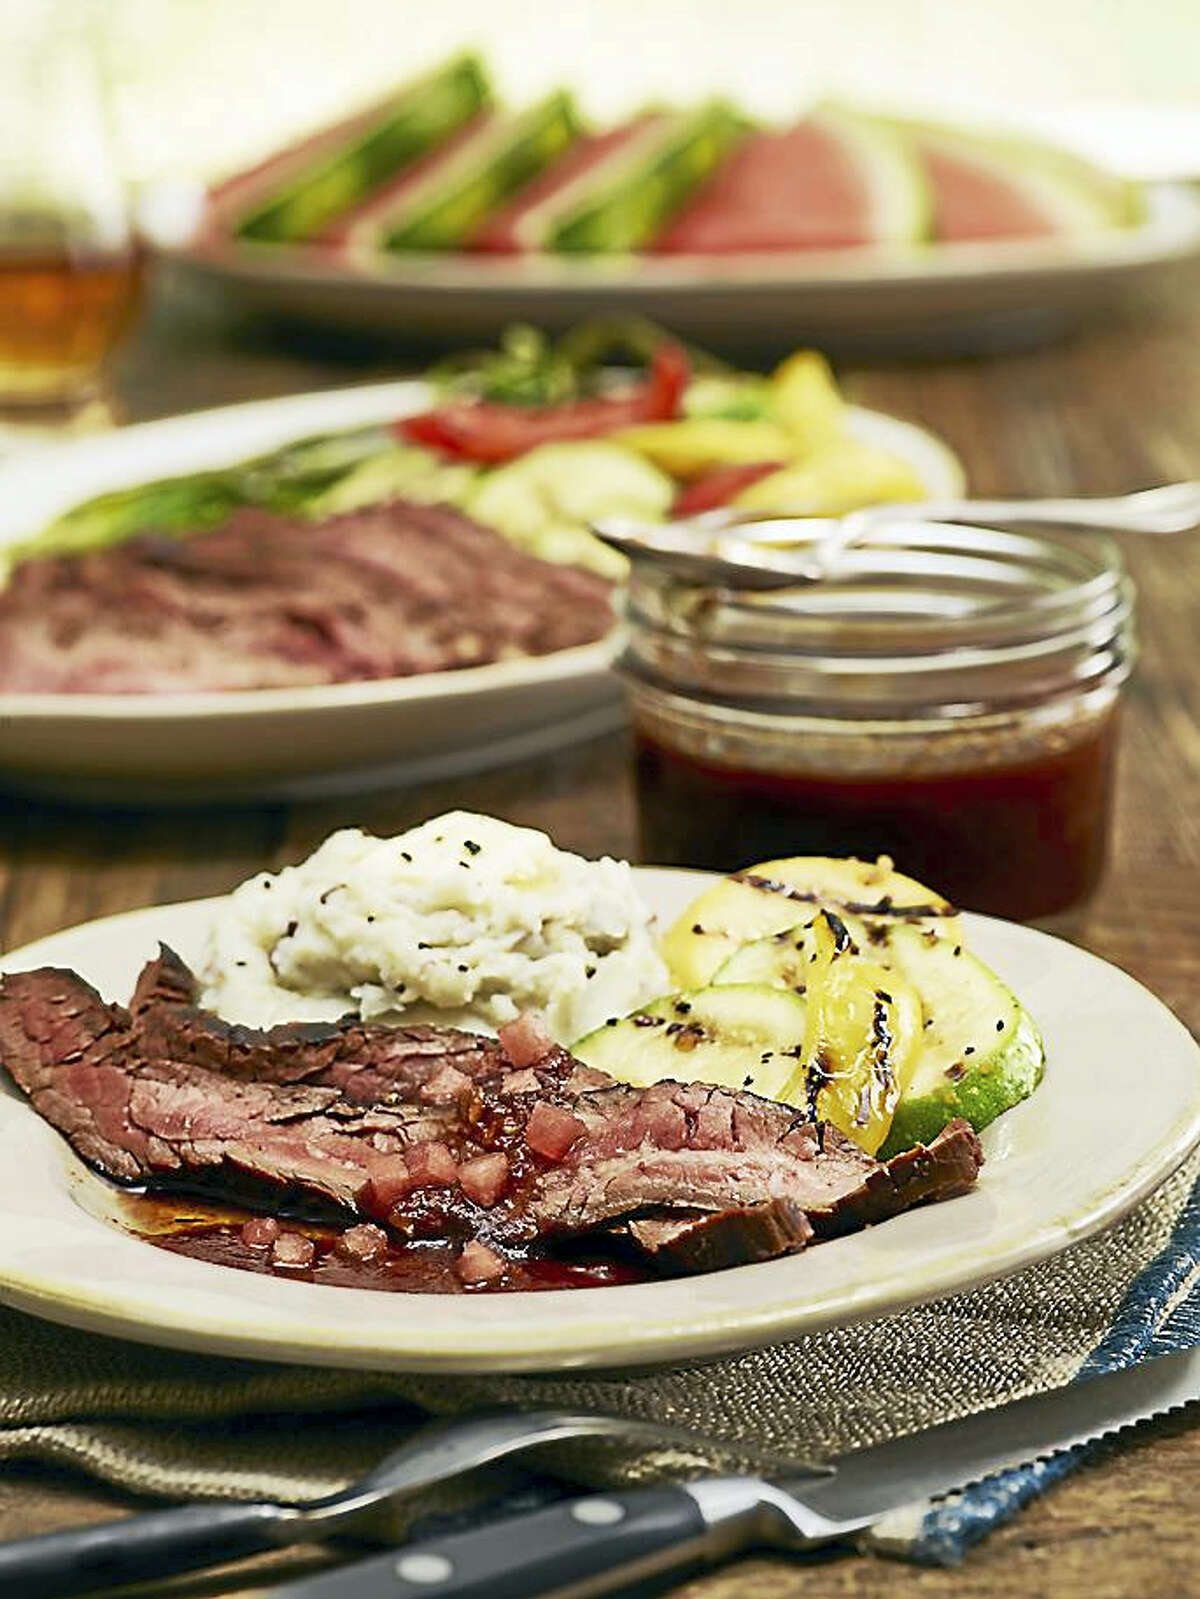 Flank steak with watermelon bourbon glaze pairs well with mashed potatoes and grilled vegetables.